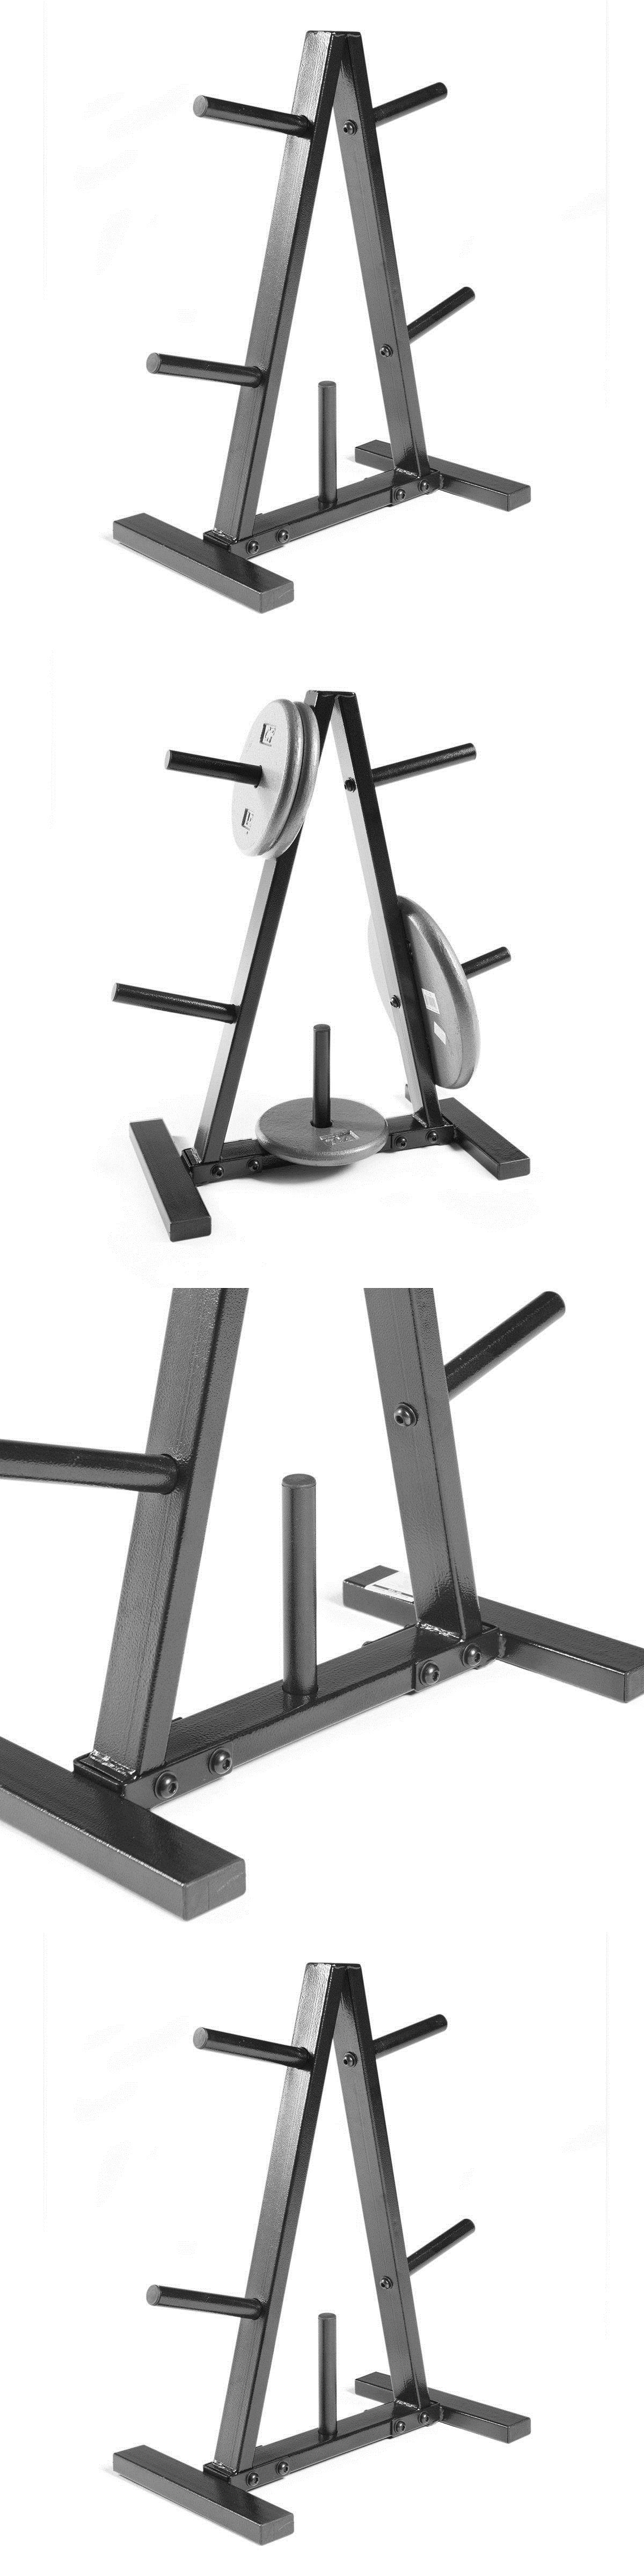 plans plate and weight cap olympic barbell rack bar wall storage holder